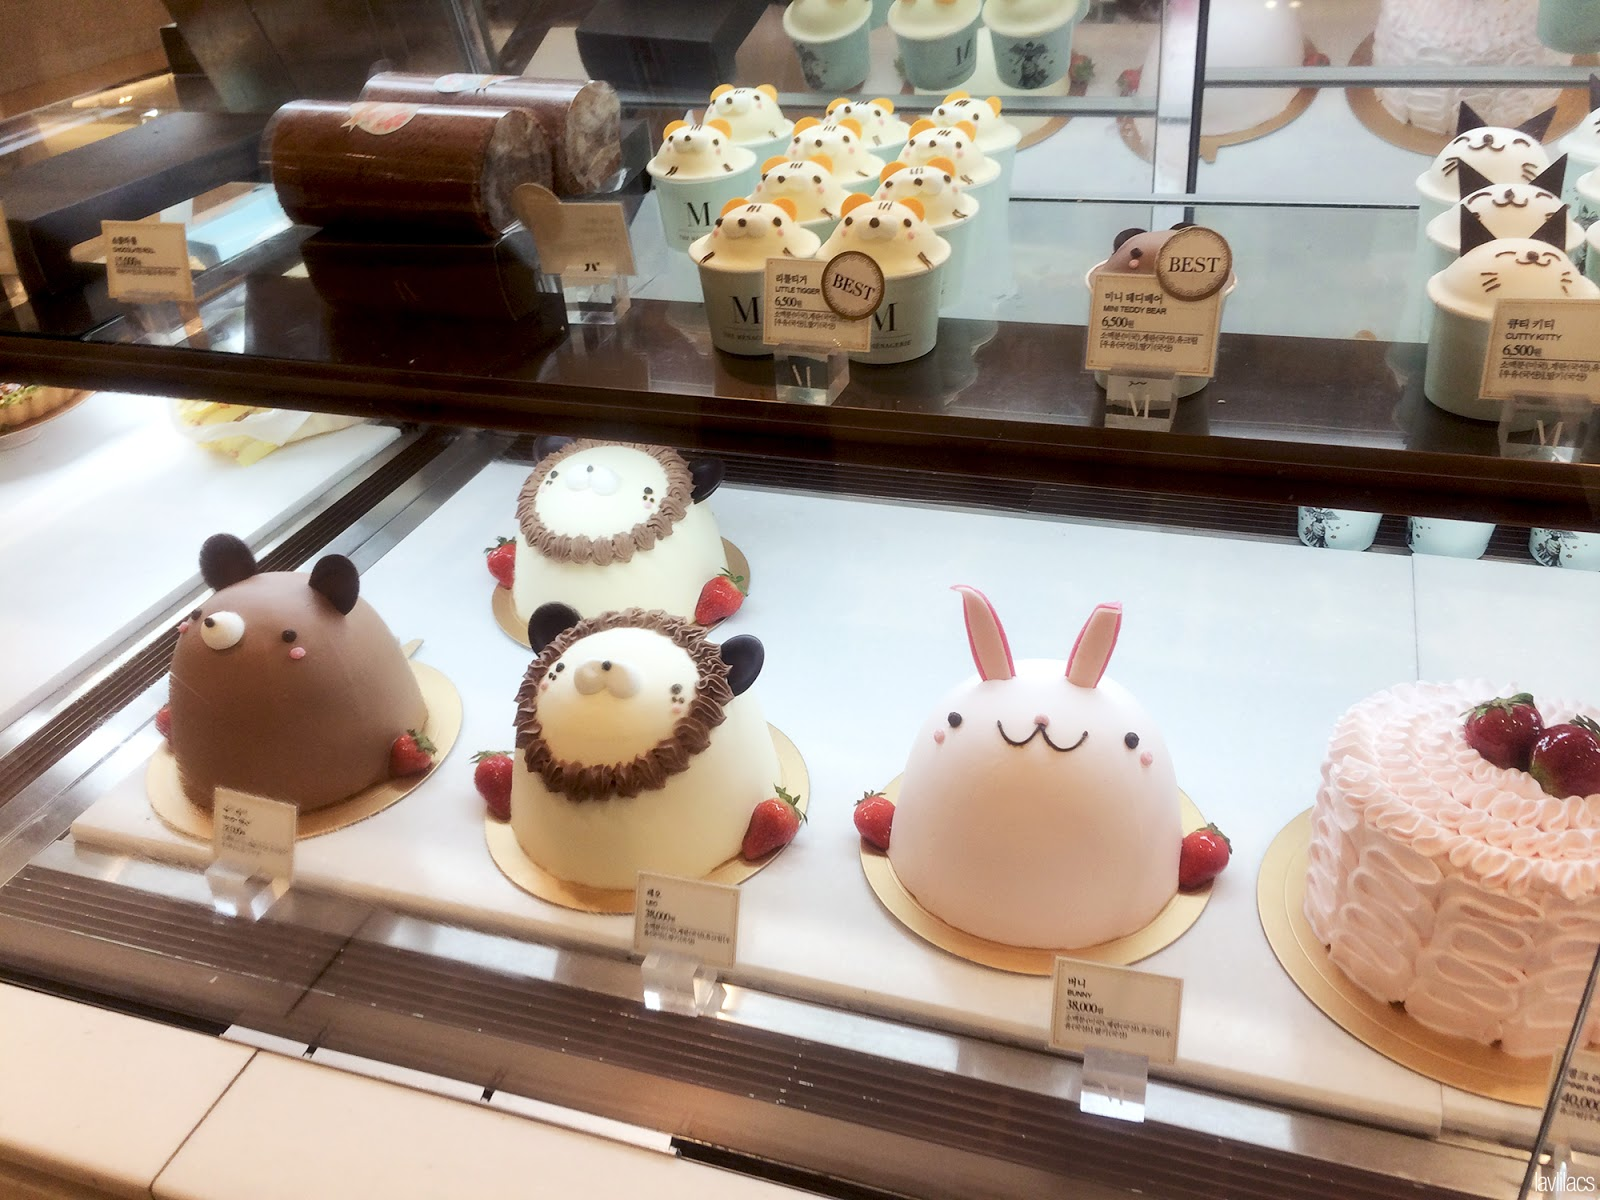 Seoul, Korea - Summer Study Abroad 2014 - Shinsegae Gangnam - Food court cute animal cakes